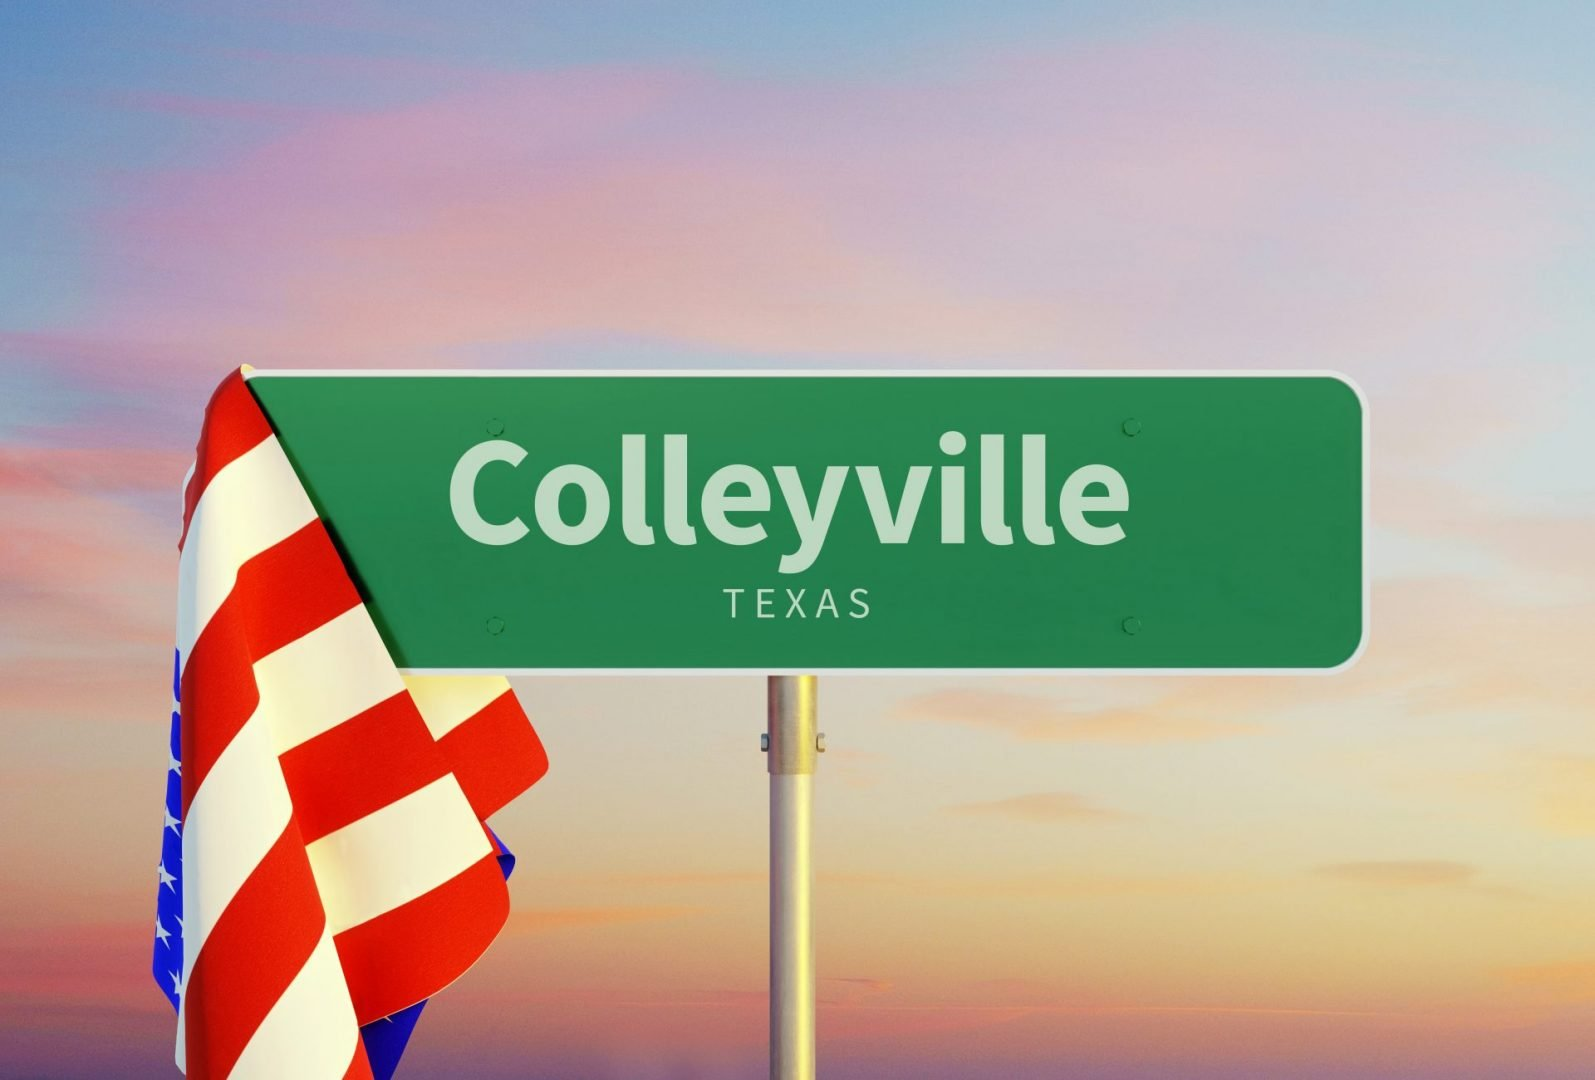 colleyville pc repair and it